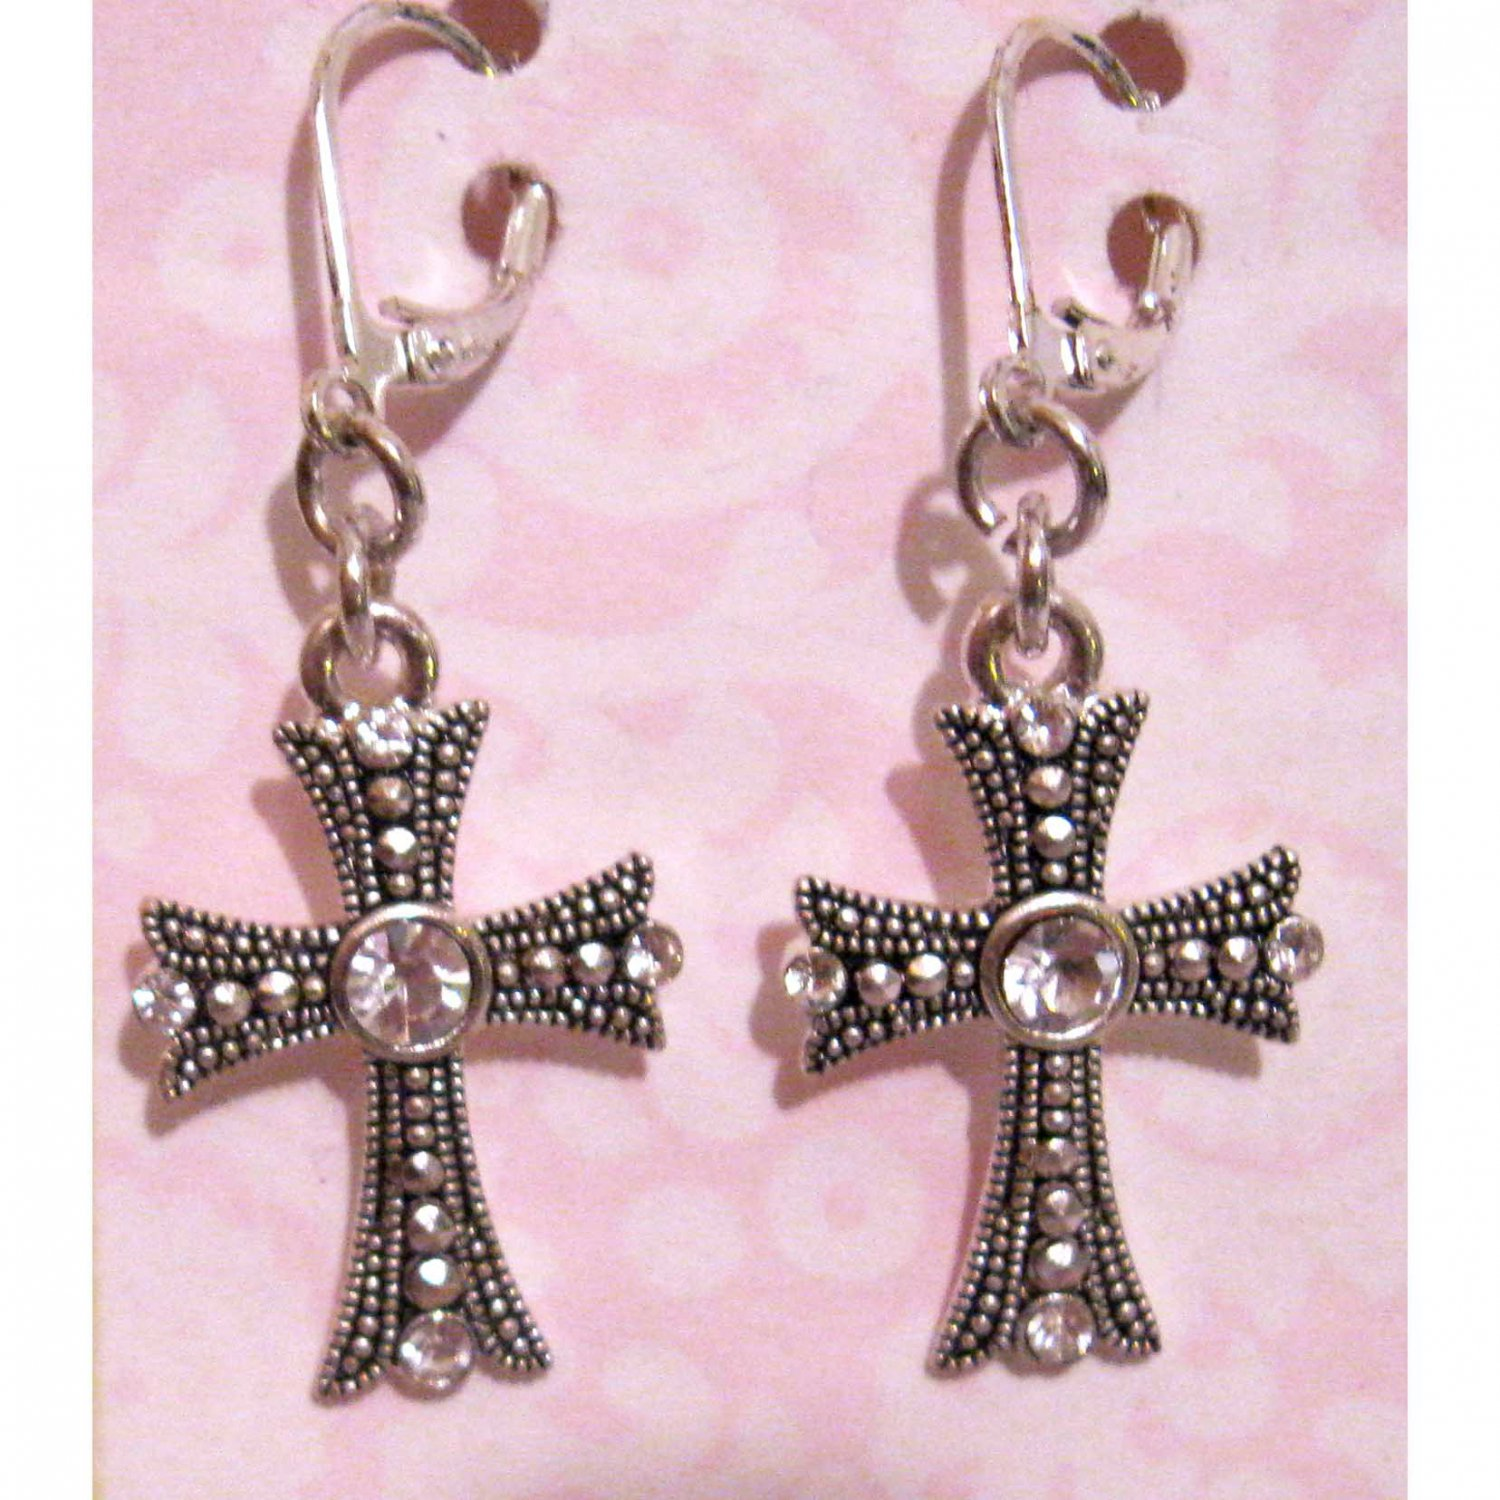 Silver cross earrings with white crystals